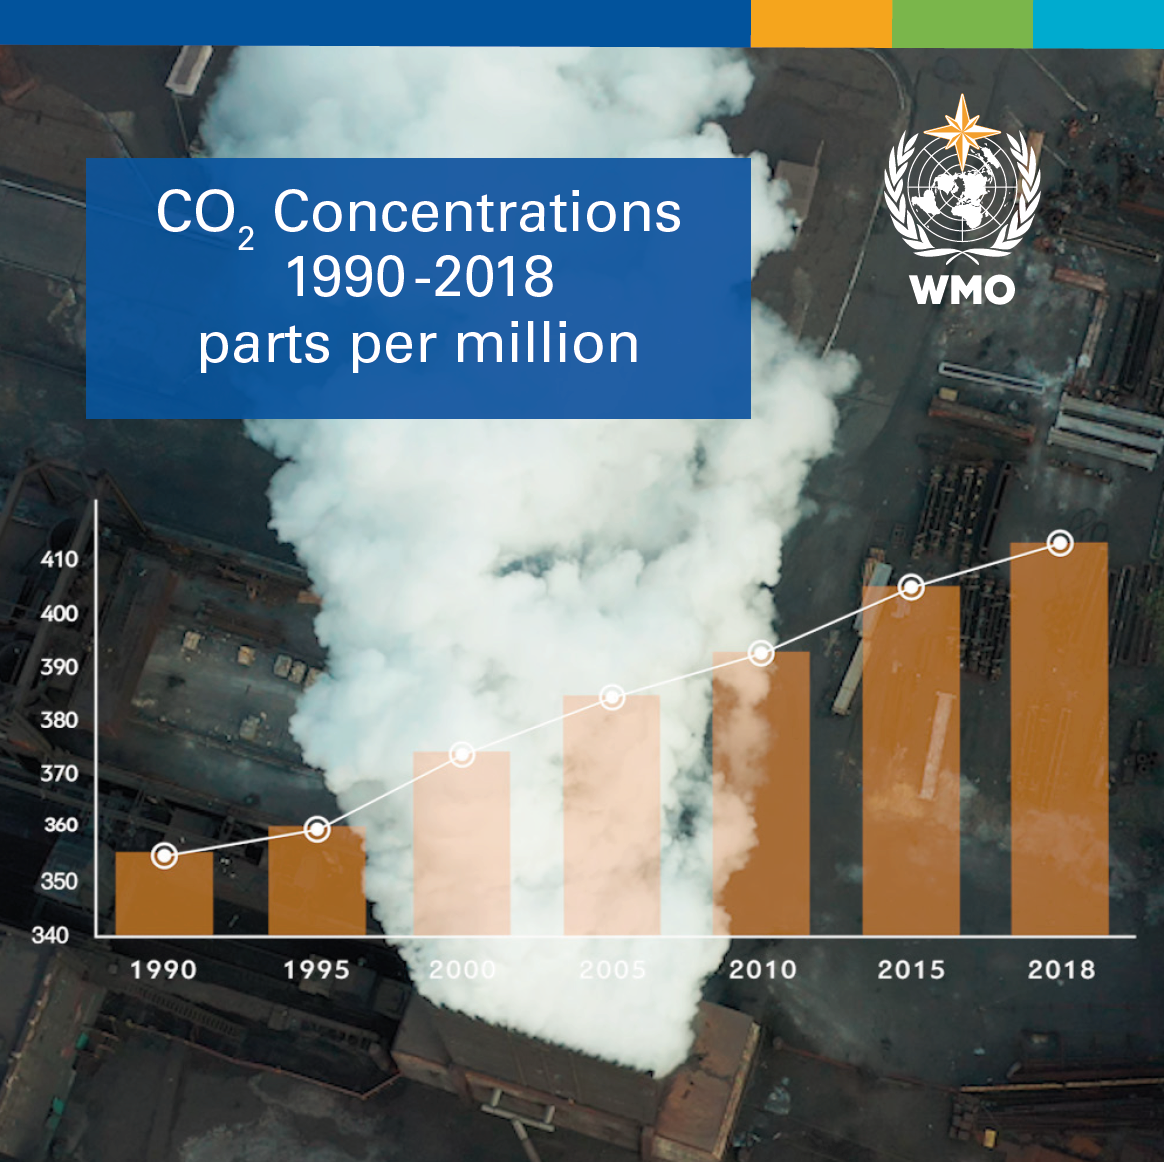 Greenhouse gas concentrations in atmosphere reach yet another high